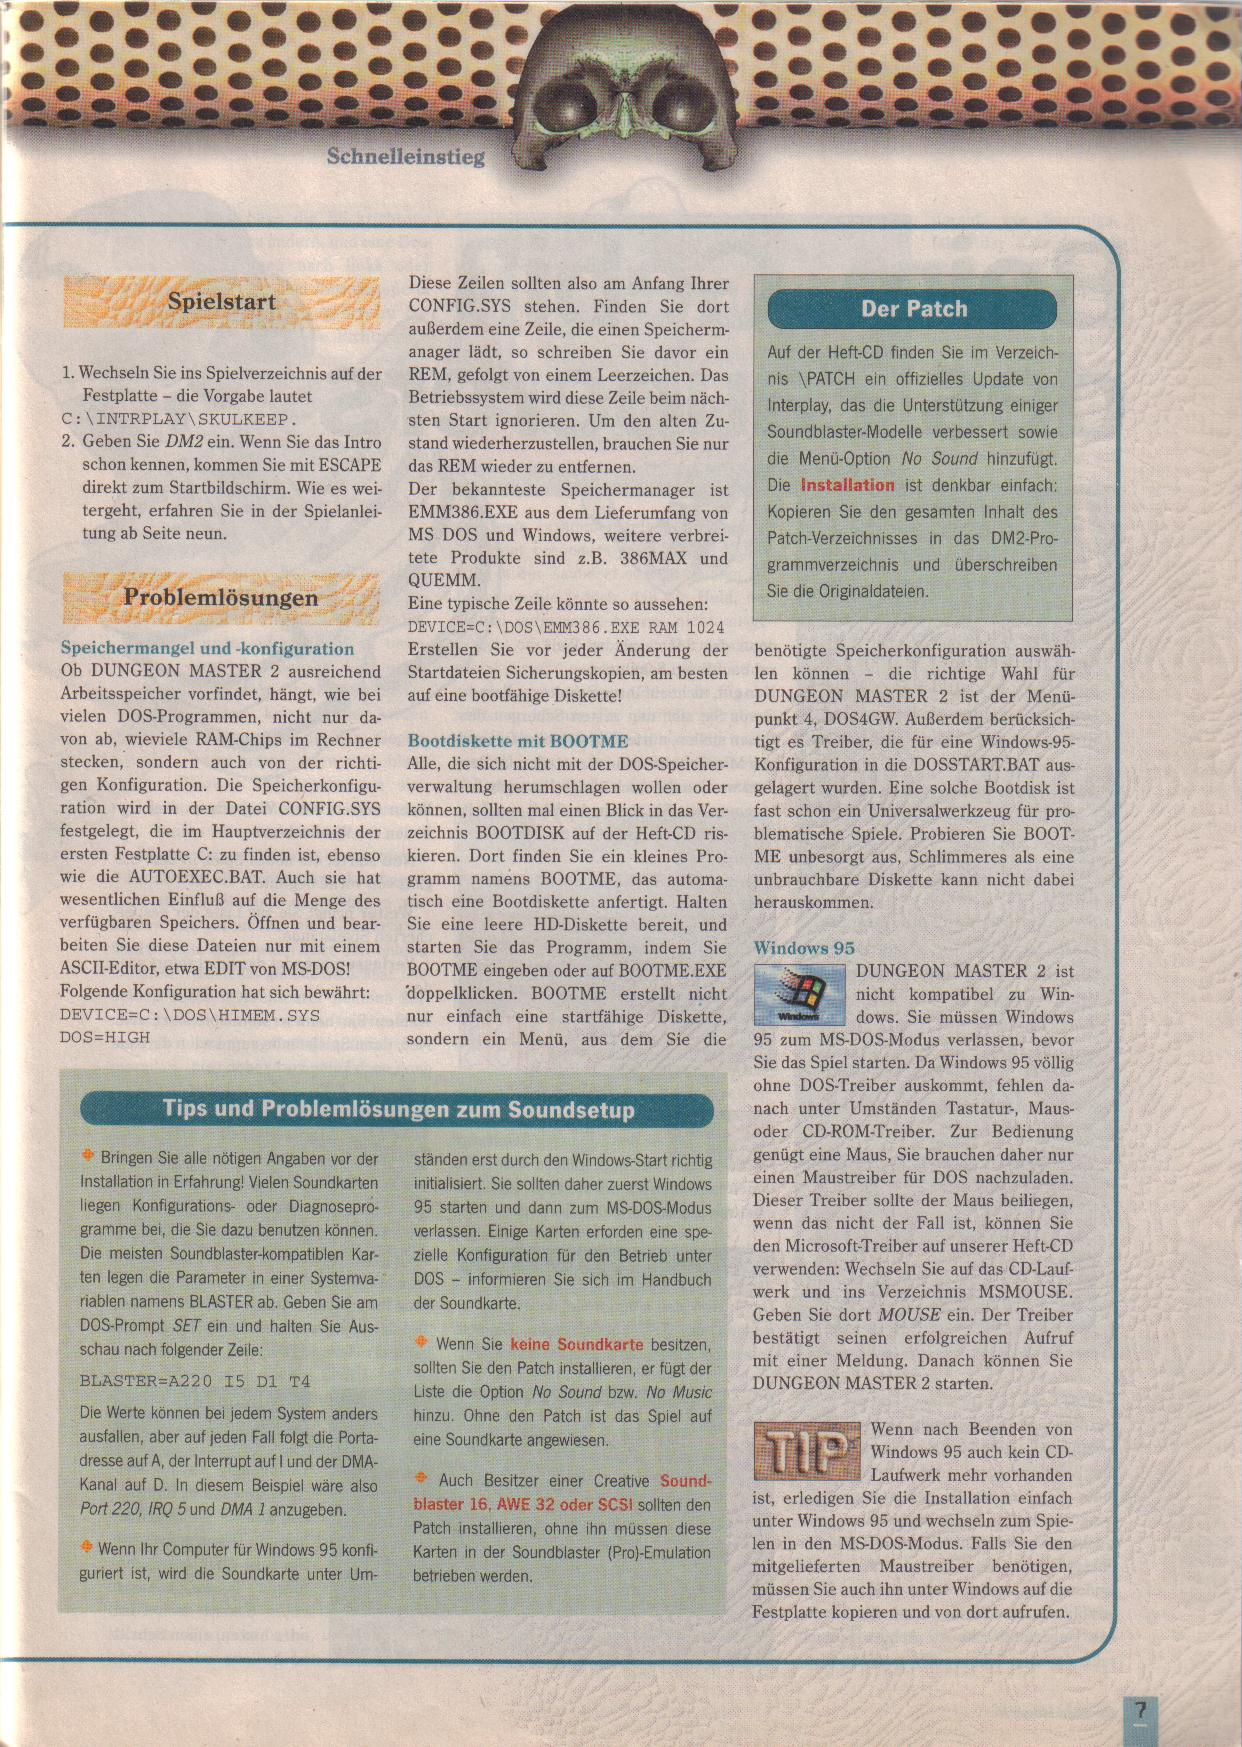 Dungeon Master II for PC (German, Best Seller Games) Page 7